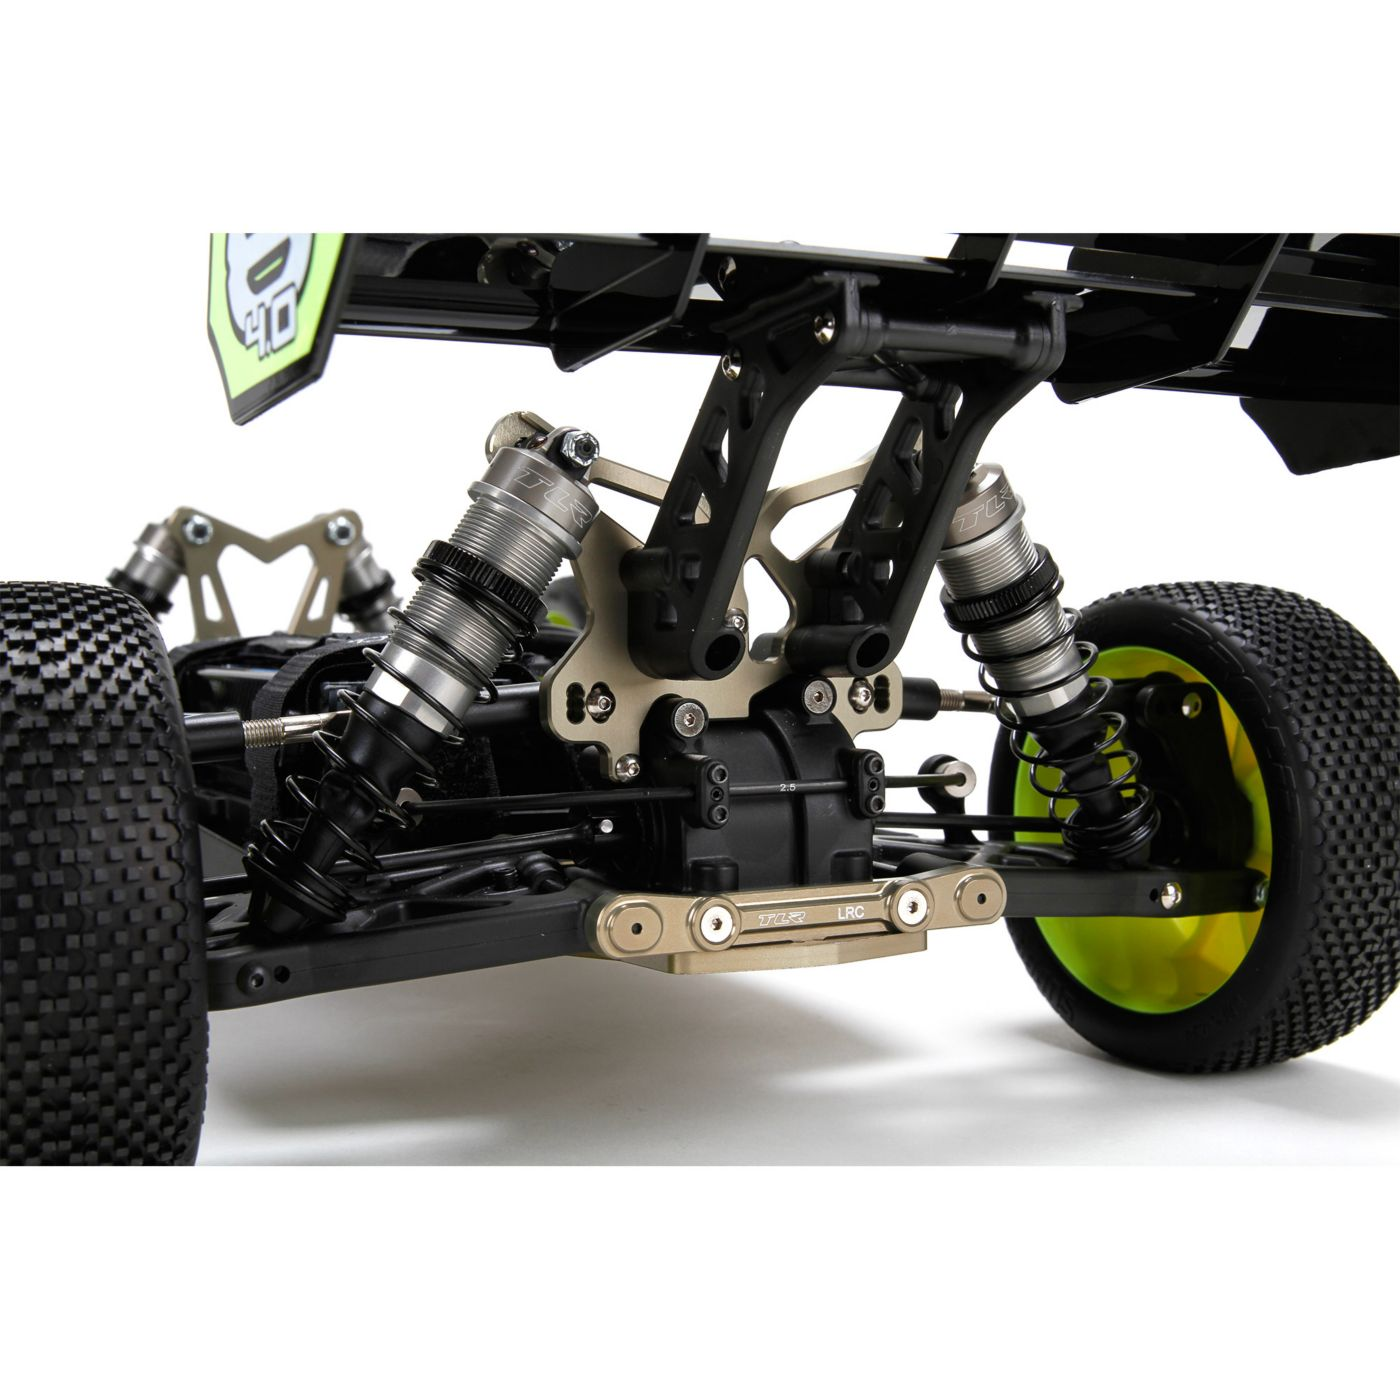 8IGHT-E 4 0 Kit: 1/8 4WD Electric Buggy